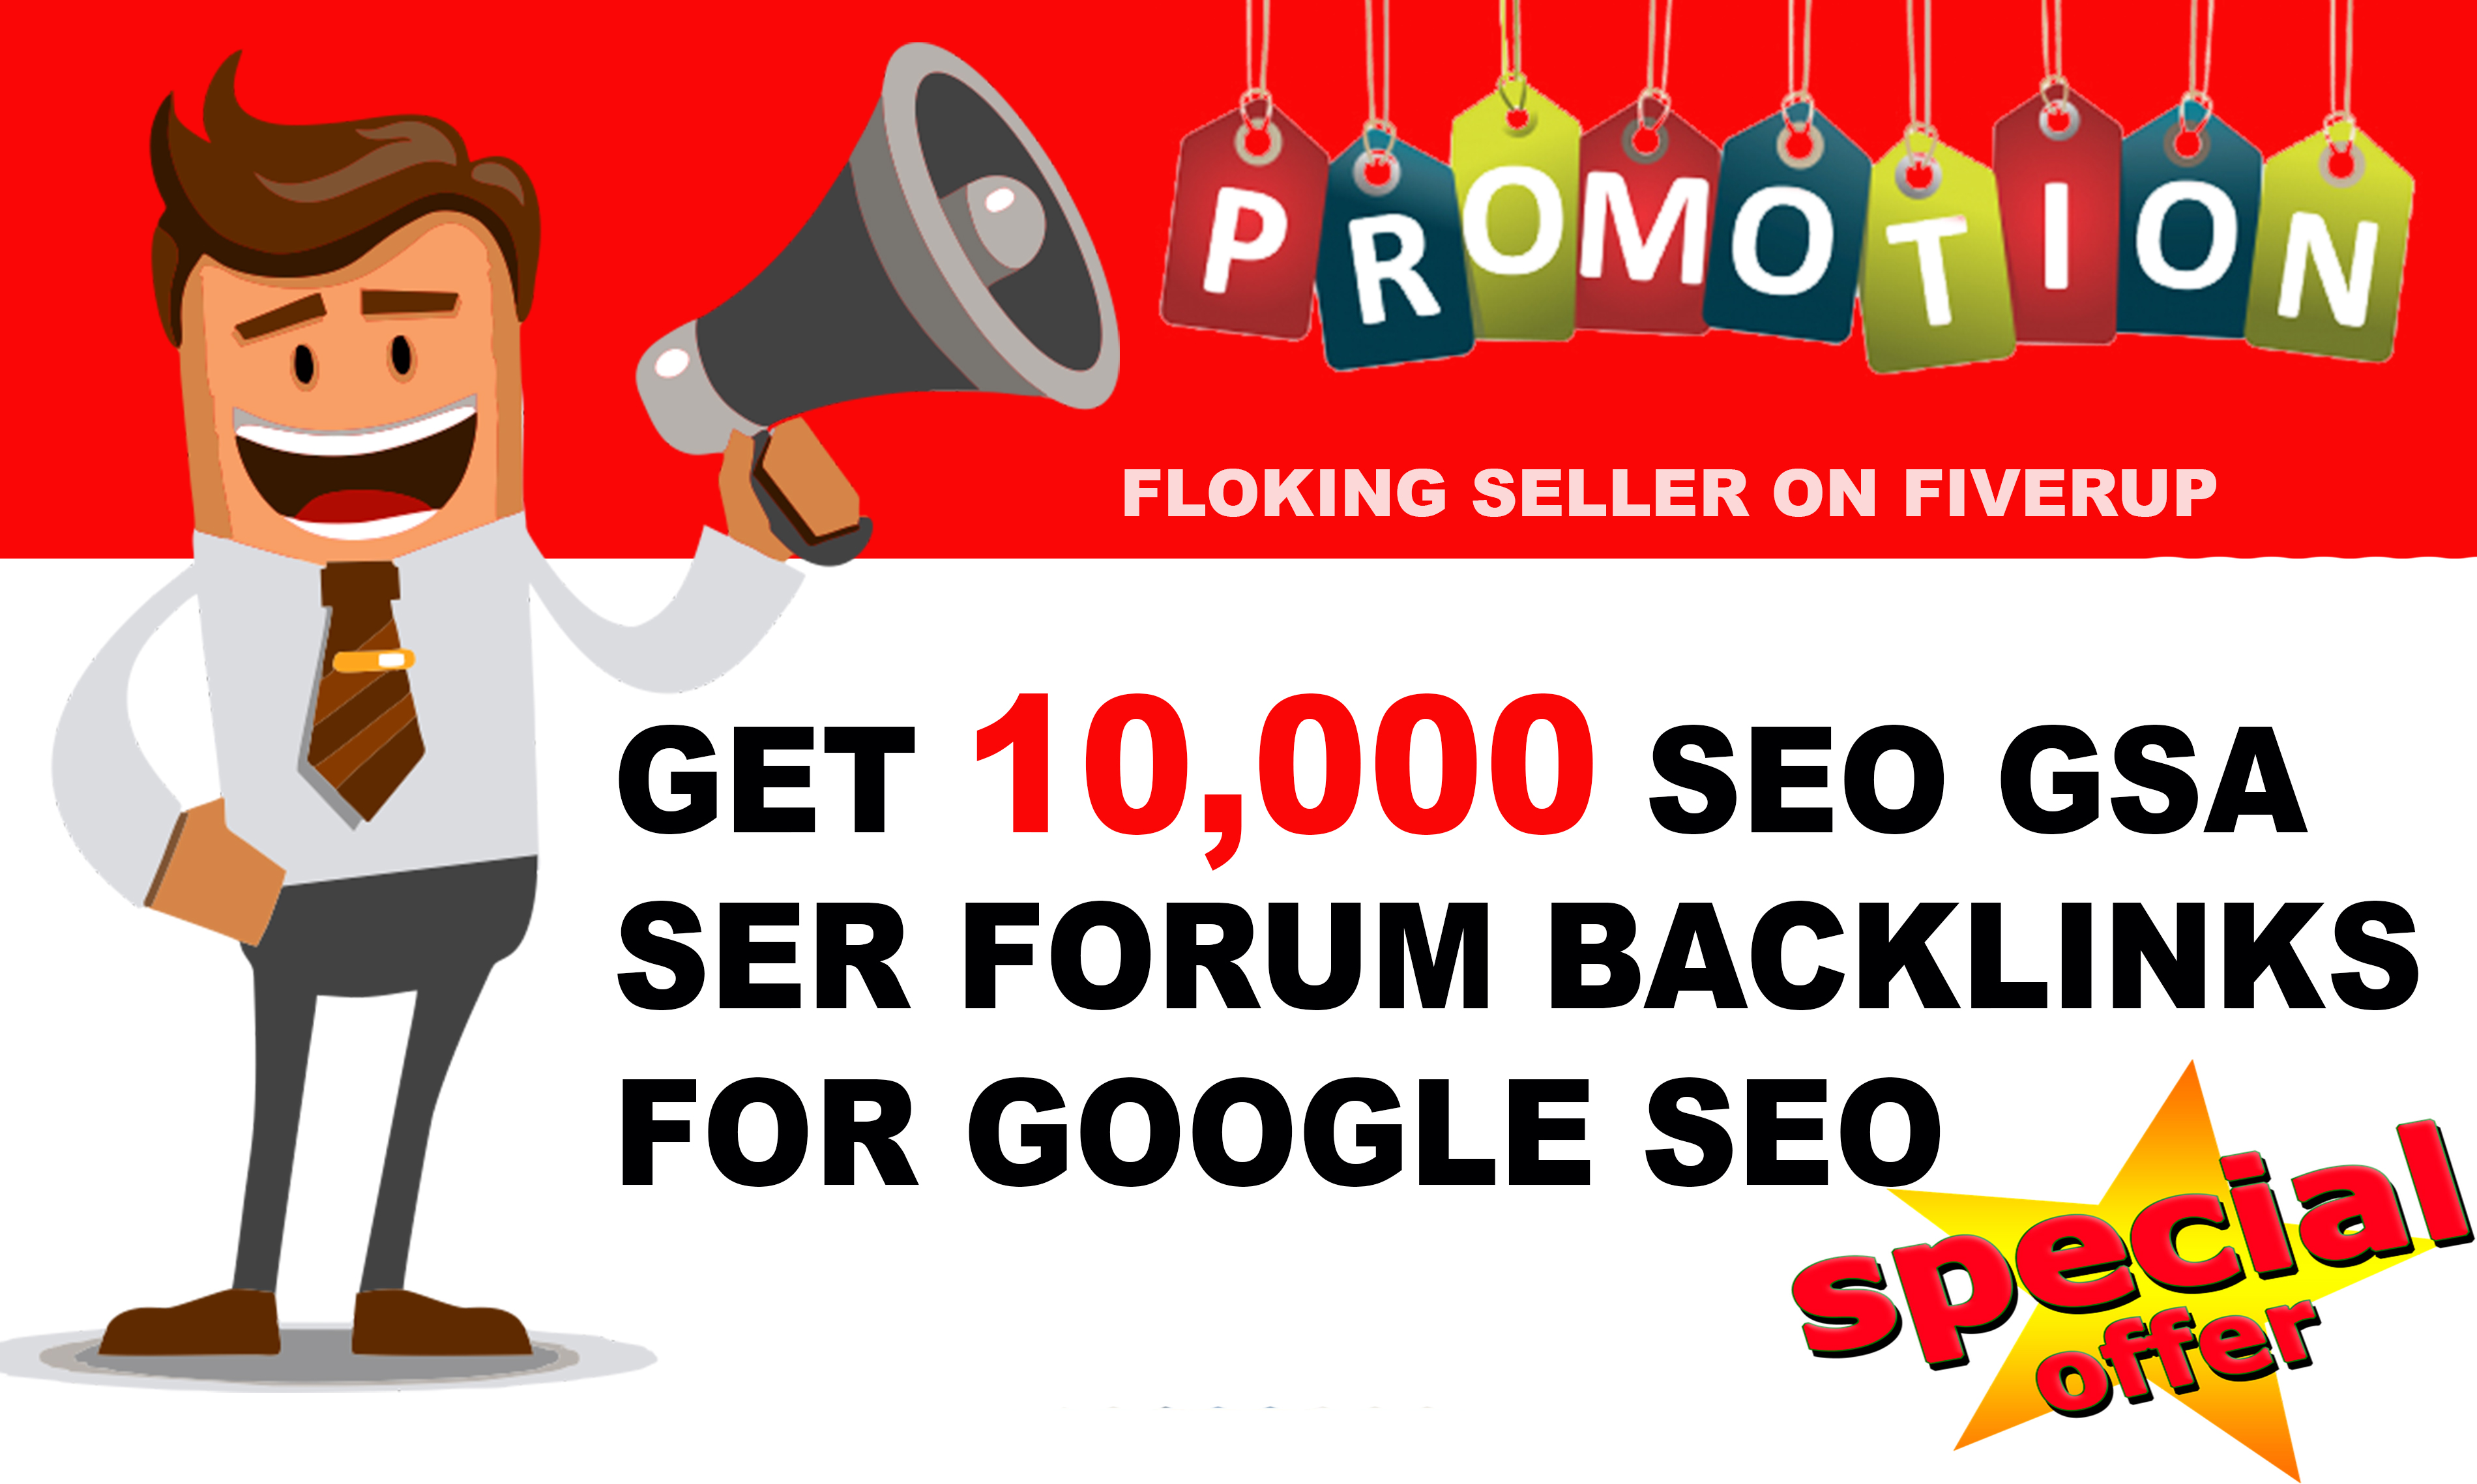 Provide You 10,000 Forum Backlinks for your Blog or website SEO